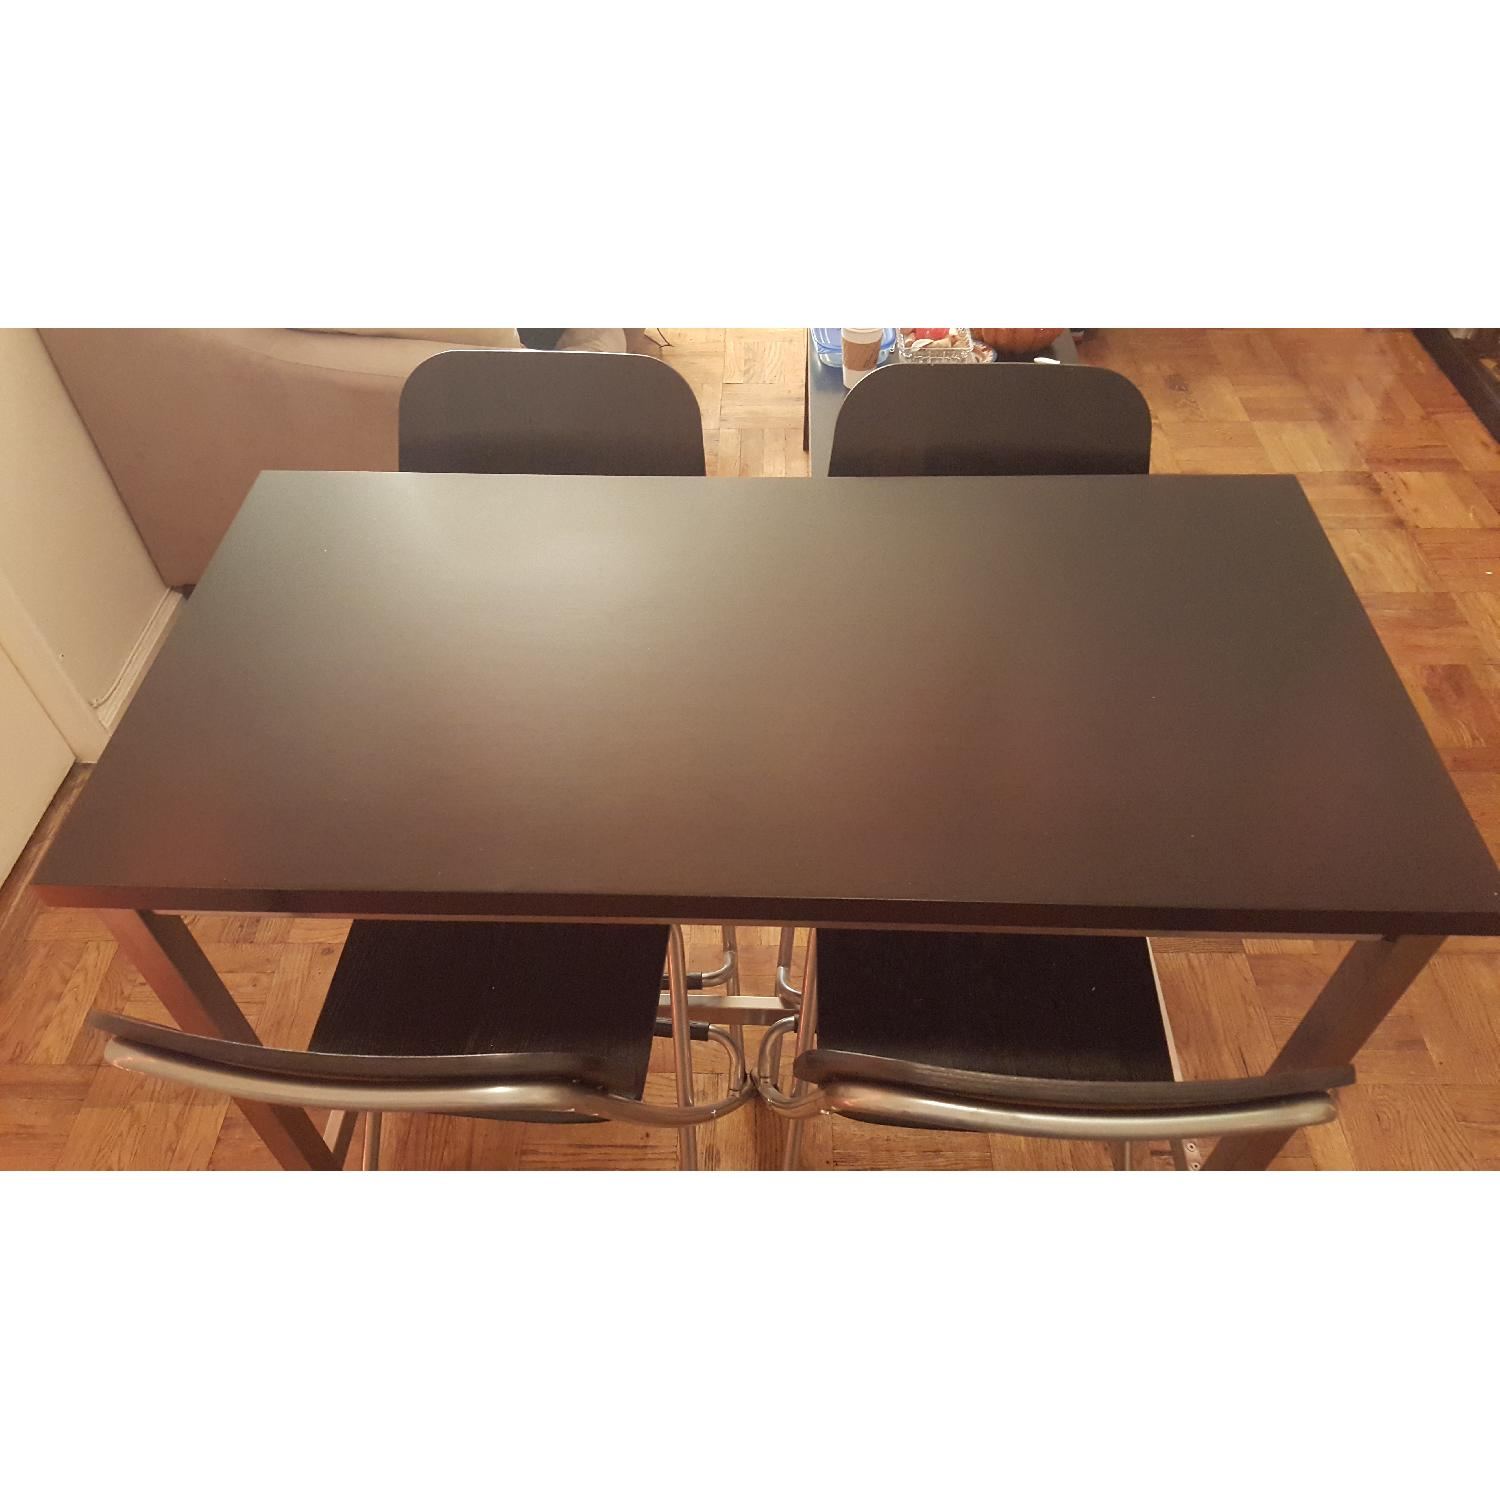 Ikea High Dining Table w/ 4 Chairs - image-1